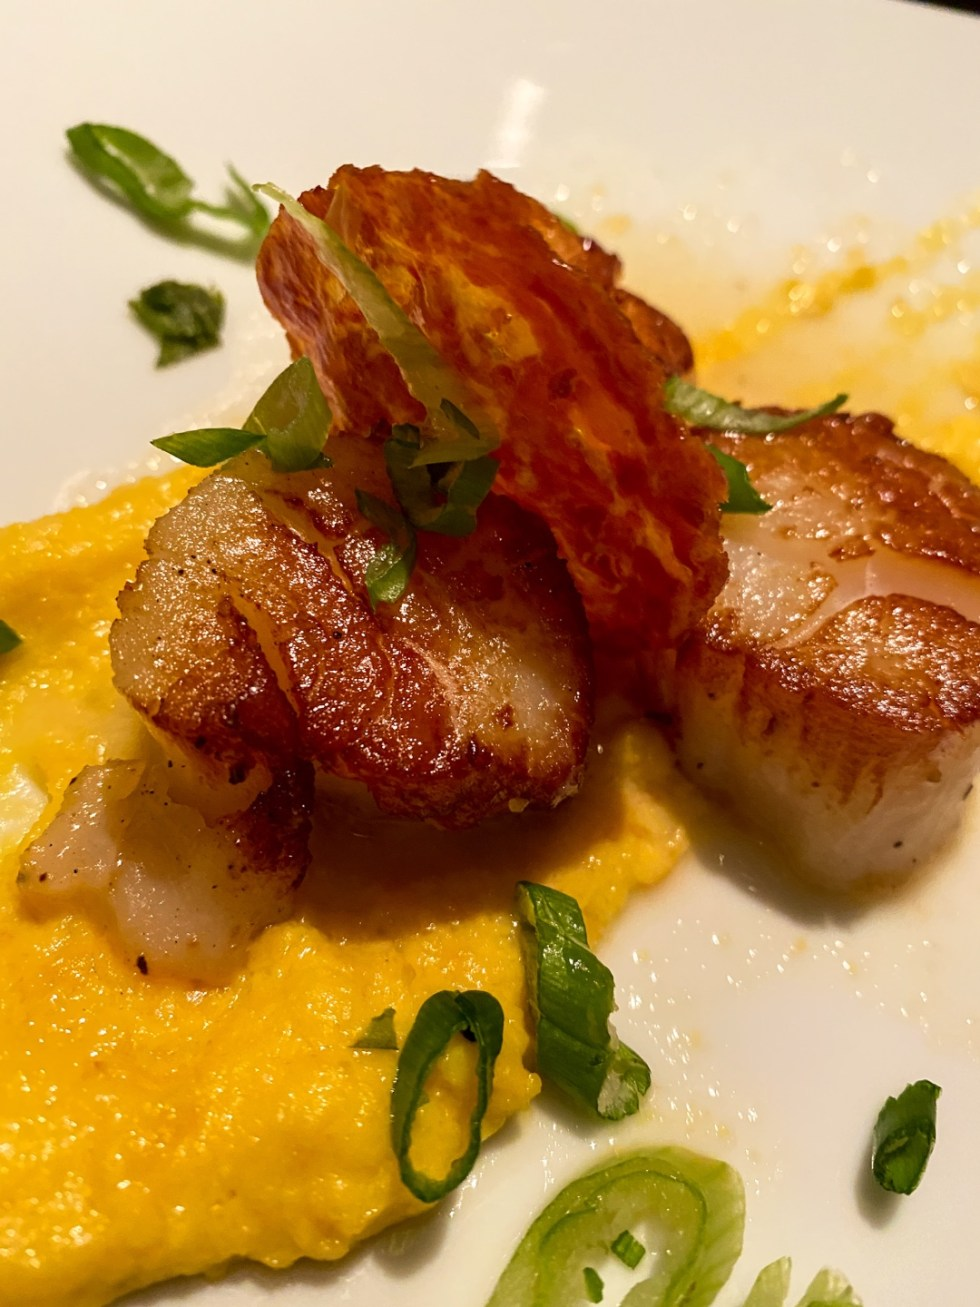 Weekend Travel: The Best Things to Do in Beaufort NC in 48 Hours - I'm Fixin' To - @imfixintoblog |Things to Do in Beaufort NC by popular NC travel blog, I'm Fixin' To: image of a plate of scallops.